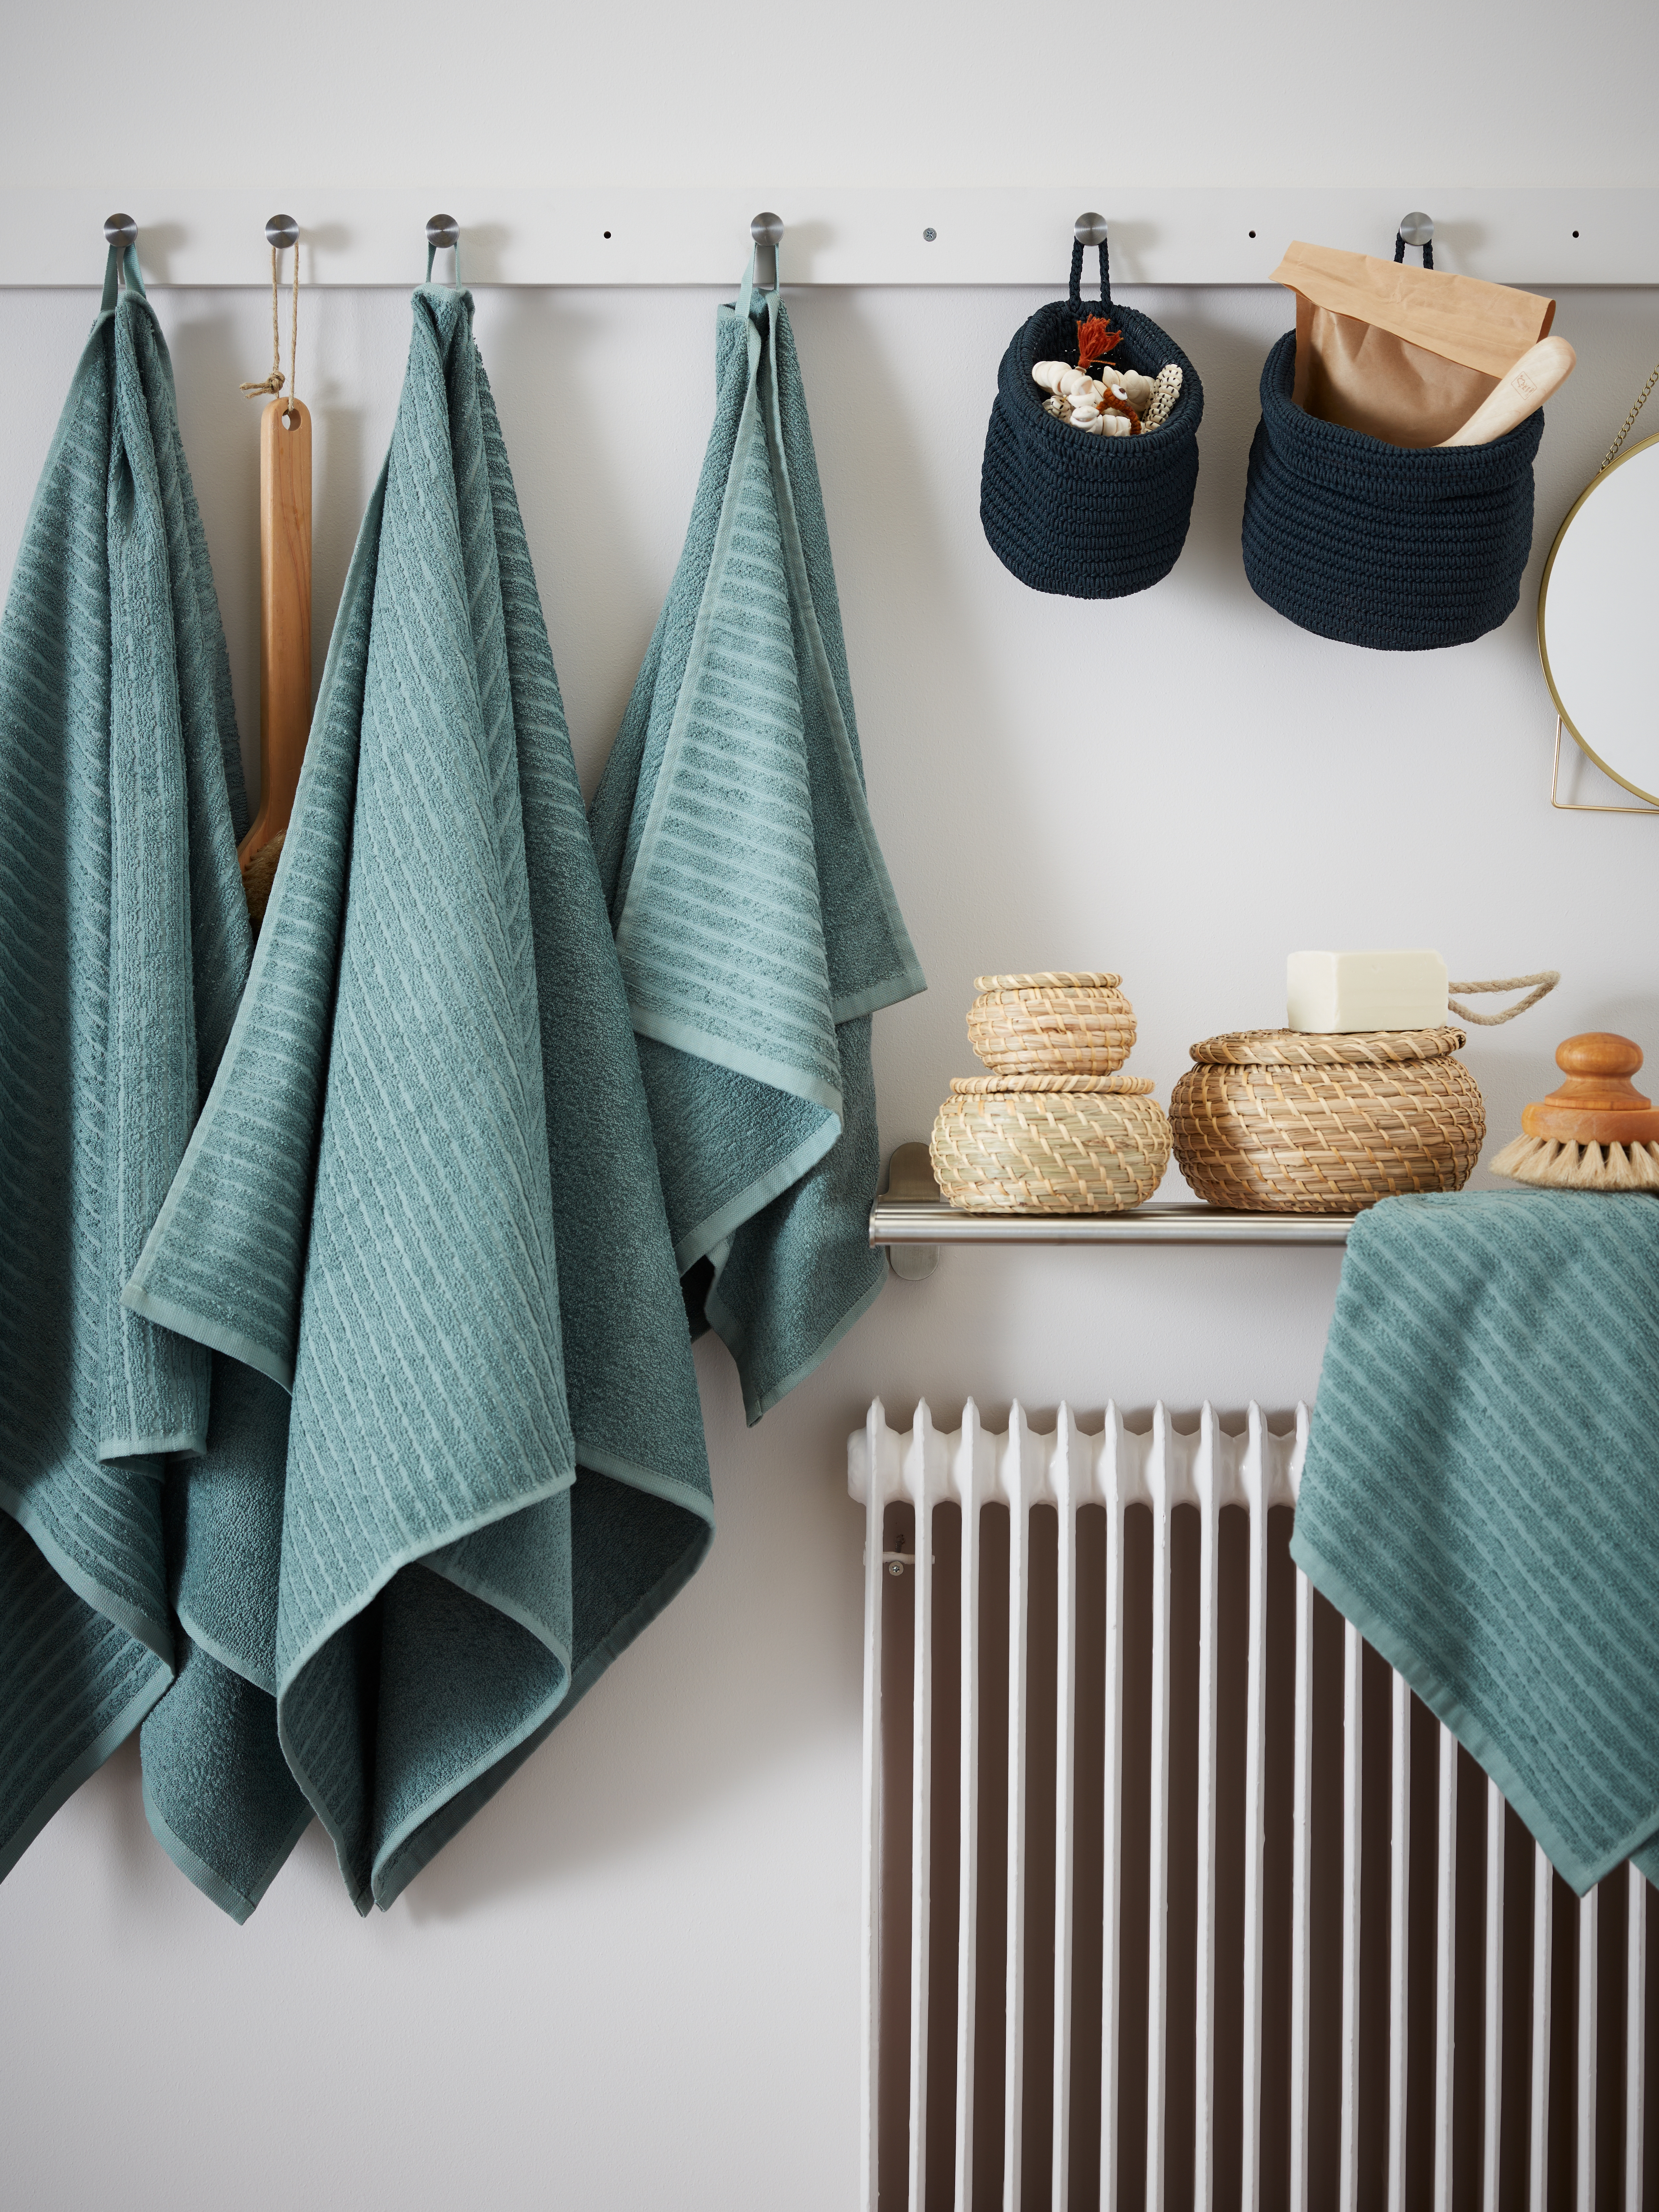 Grey-turquoise VÅGSJÖN towels hanging on a long row of hooks, next to blue NORDRANA baskets with bathroom accessories.